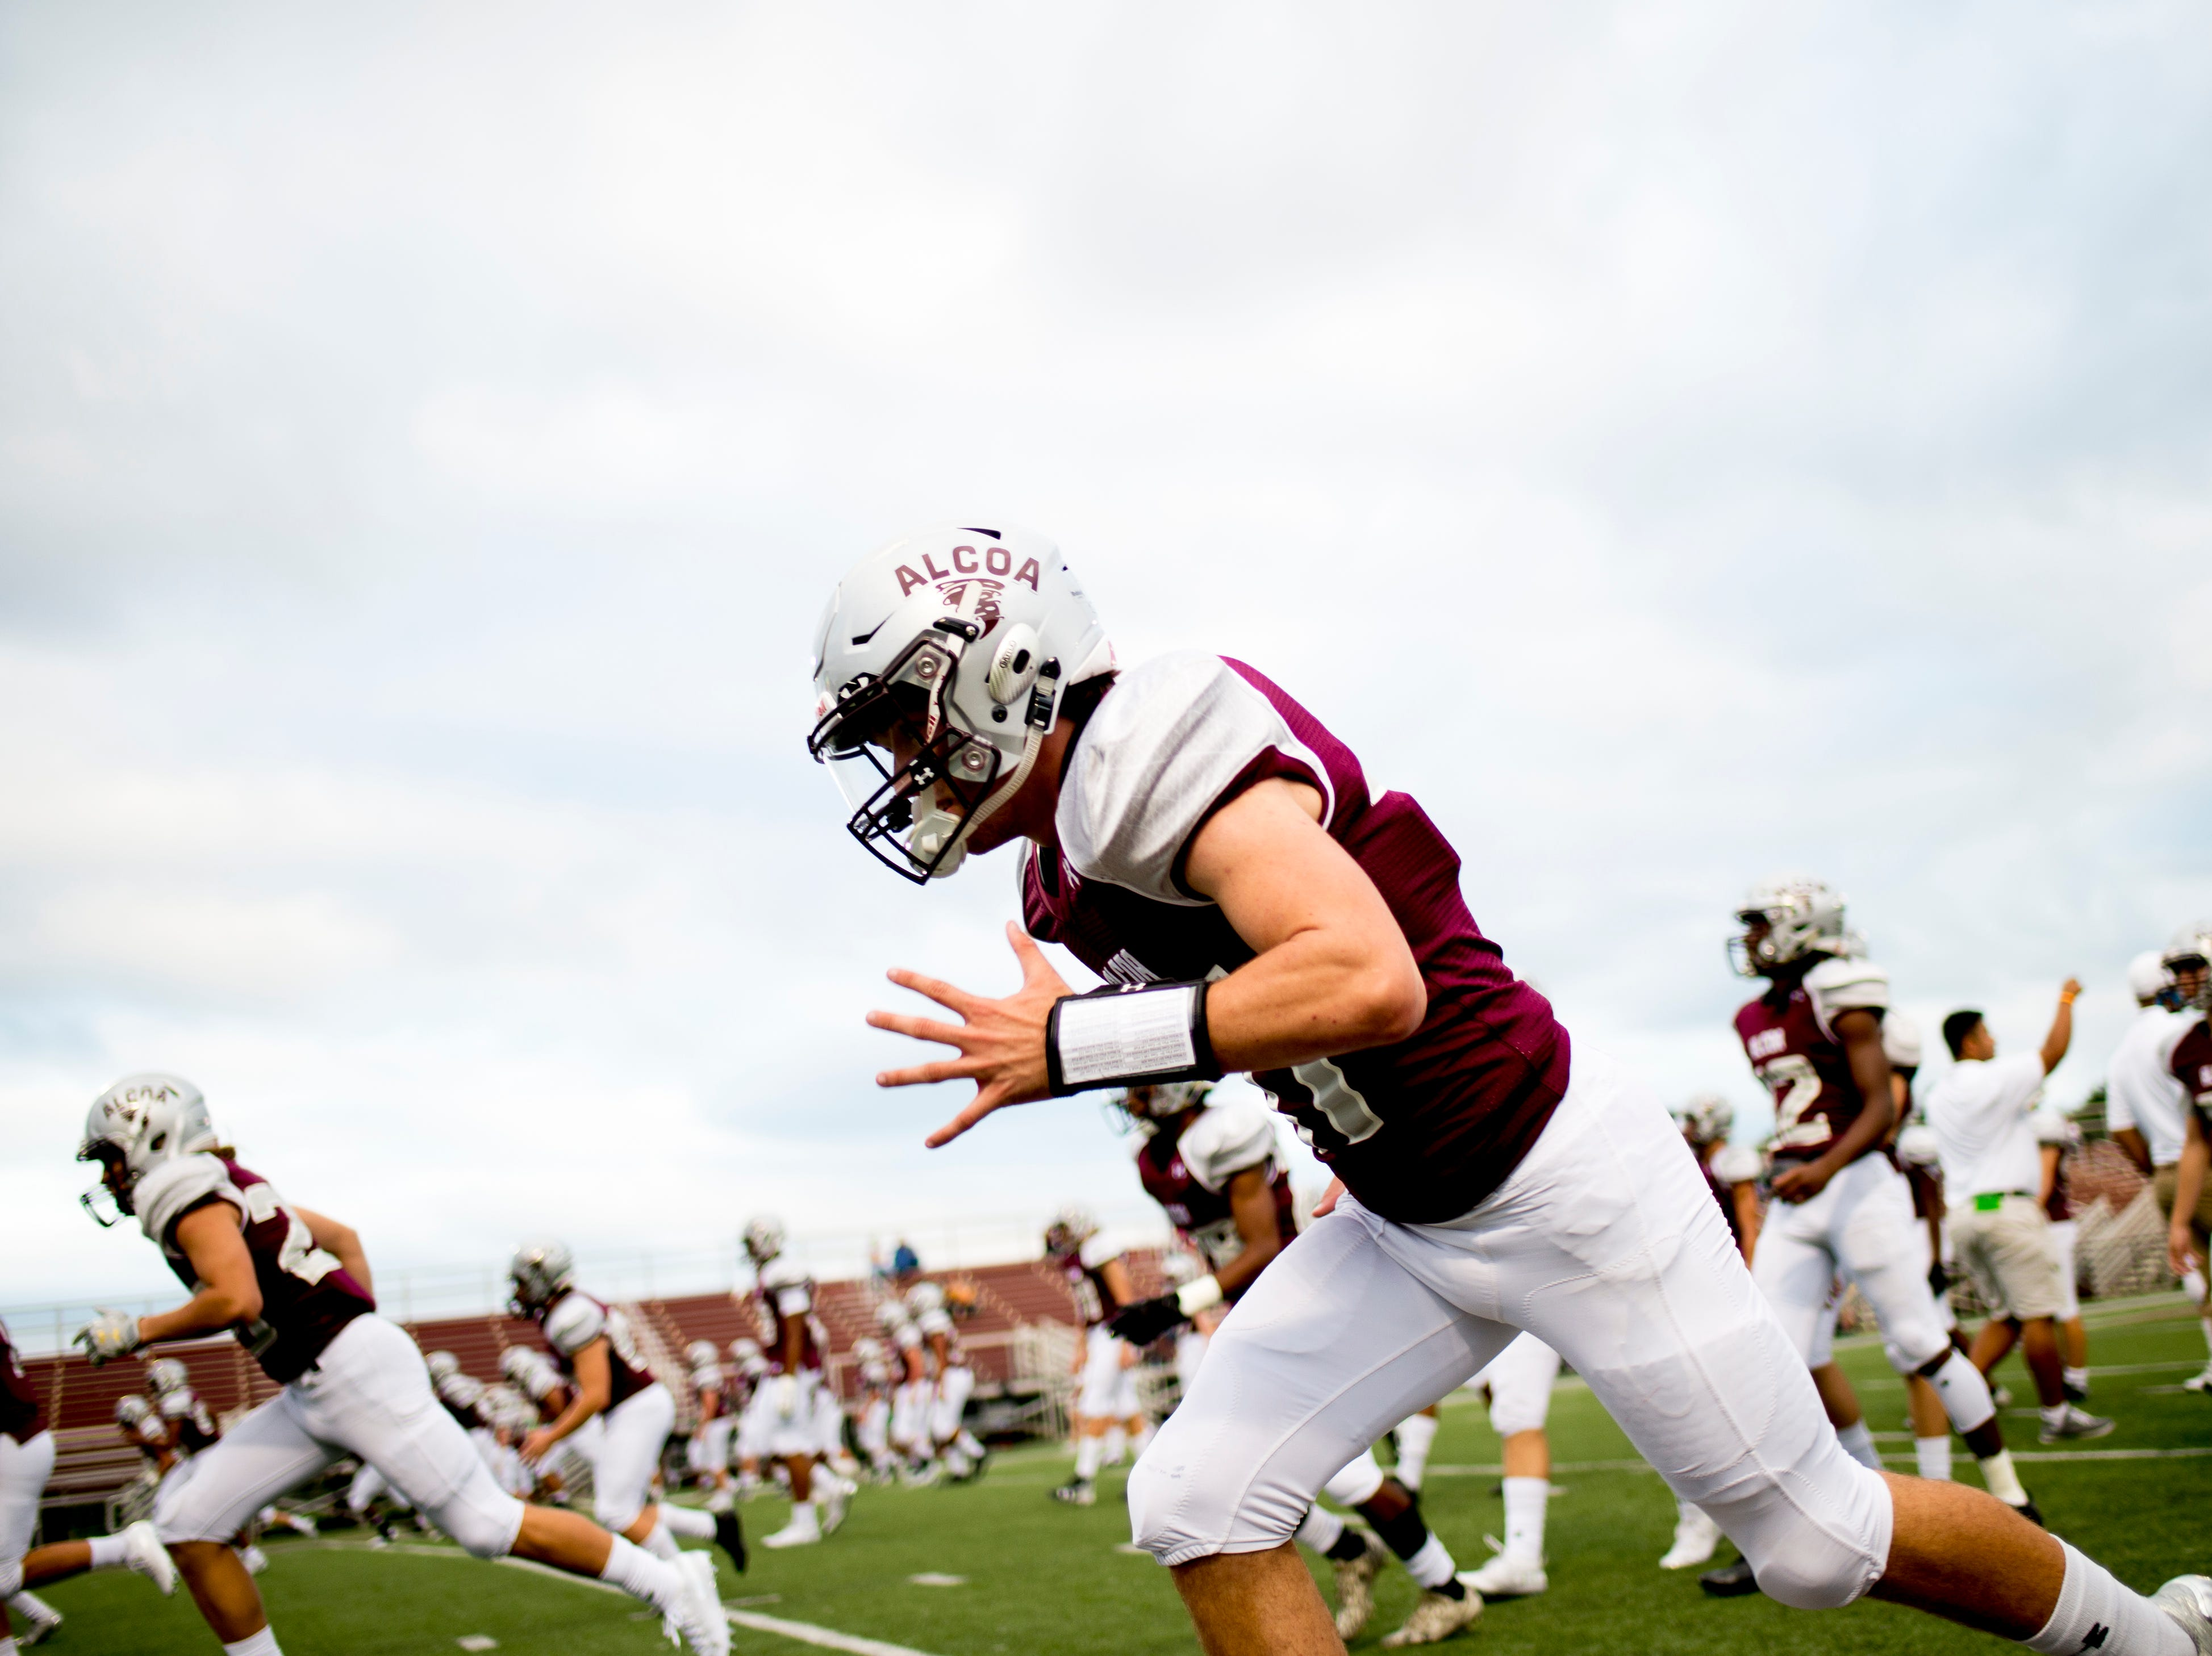 Alcoa warms up on the field during a game between Alcoa and Northview at Alcoa High School in Alcoa, Tennessee on Friday, September 28, 2018.